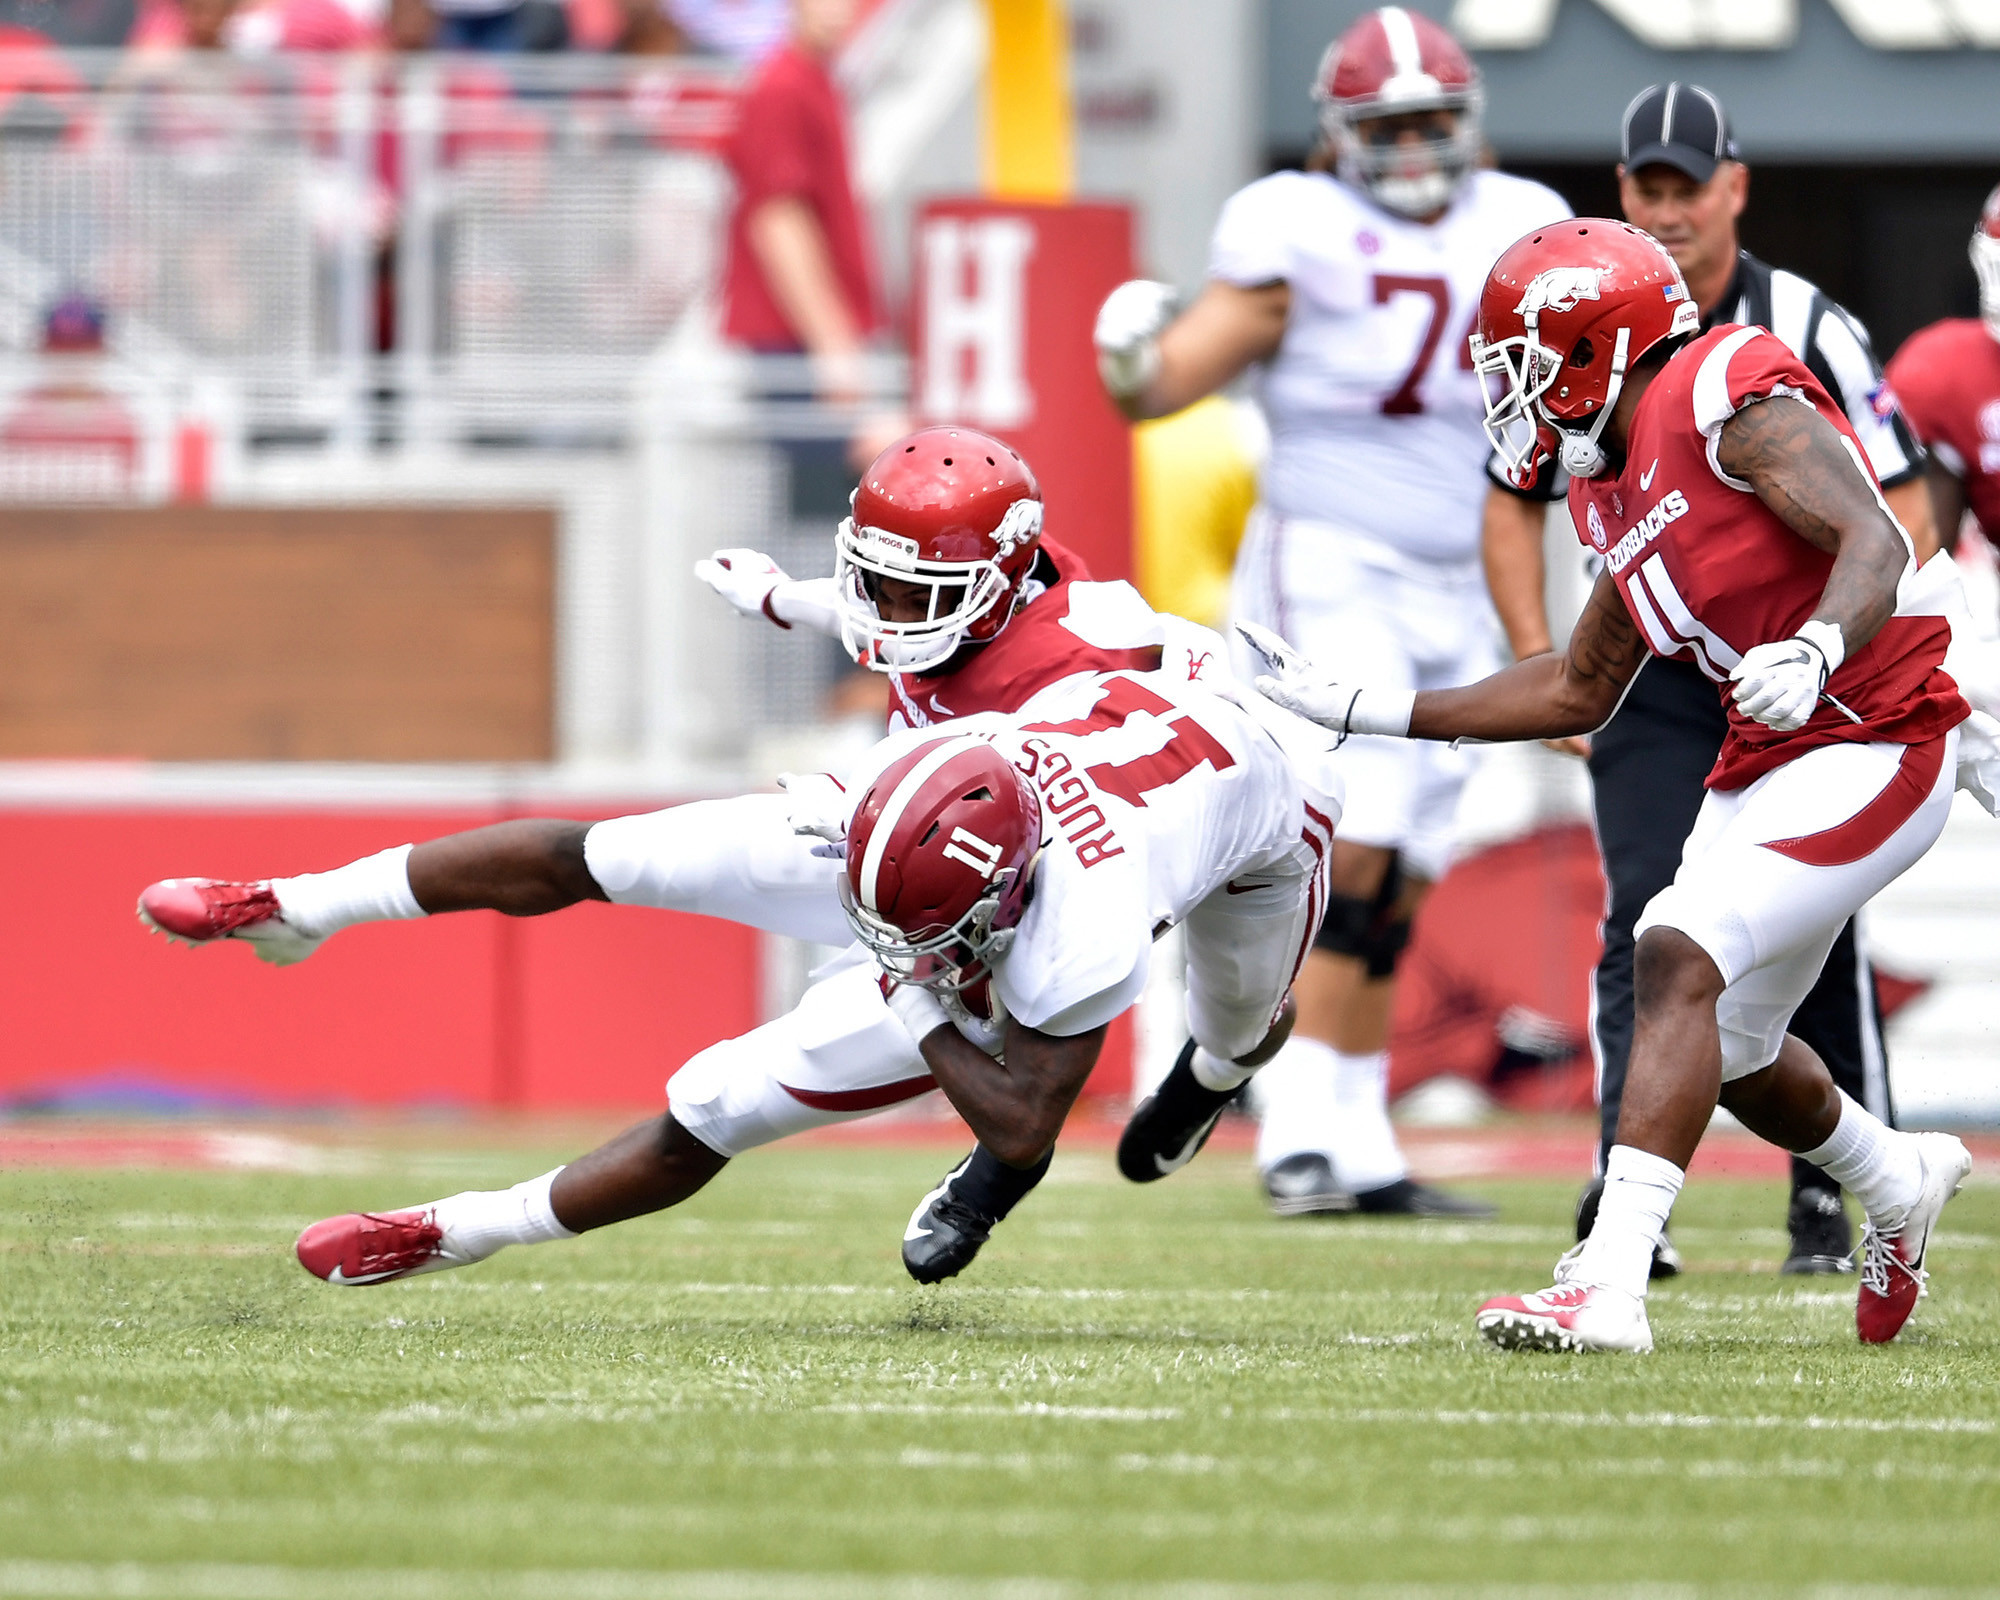 From the first half of the NCAA football game between the Arkansas Razorbacks and the Alabama Crimson Tide at Razorback Stadium on Oct. 6, 2018, in Fayetteville, Ark. Alabama defeated Arkansas 65-31. (Photo by Lee Walls)